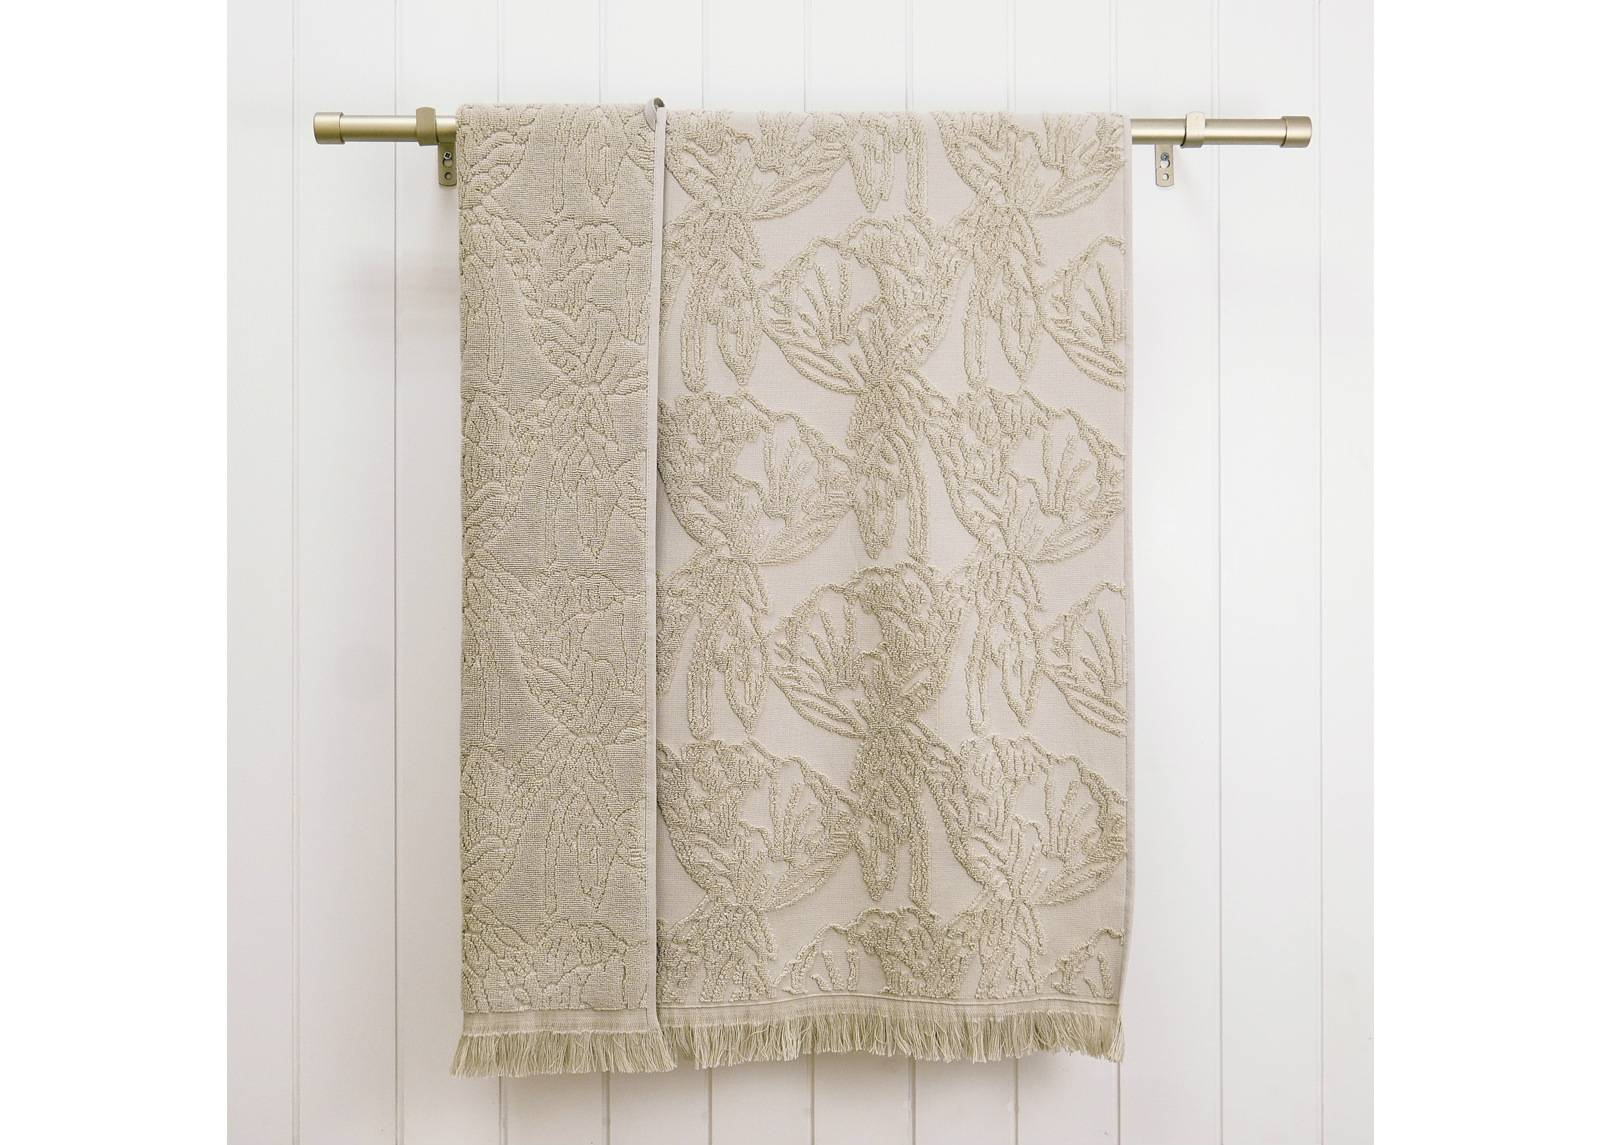 ARDENZA Froteepyyhe Blossom Blossom, beige 70x140 cm